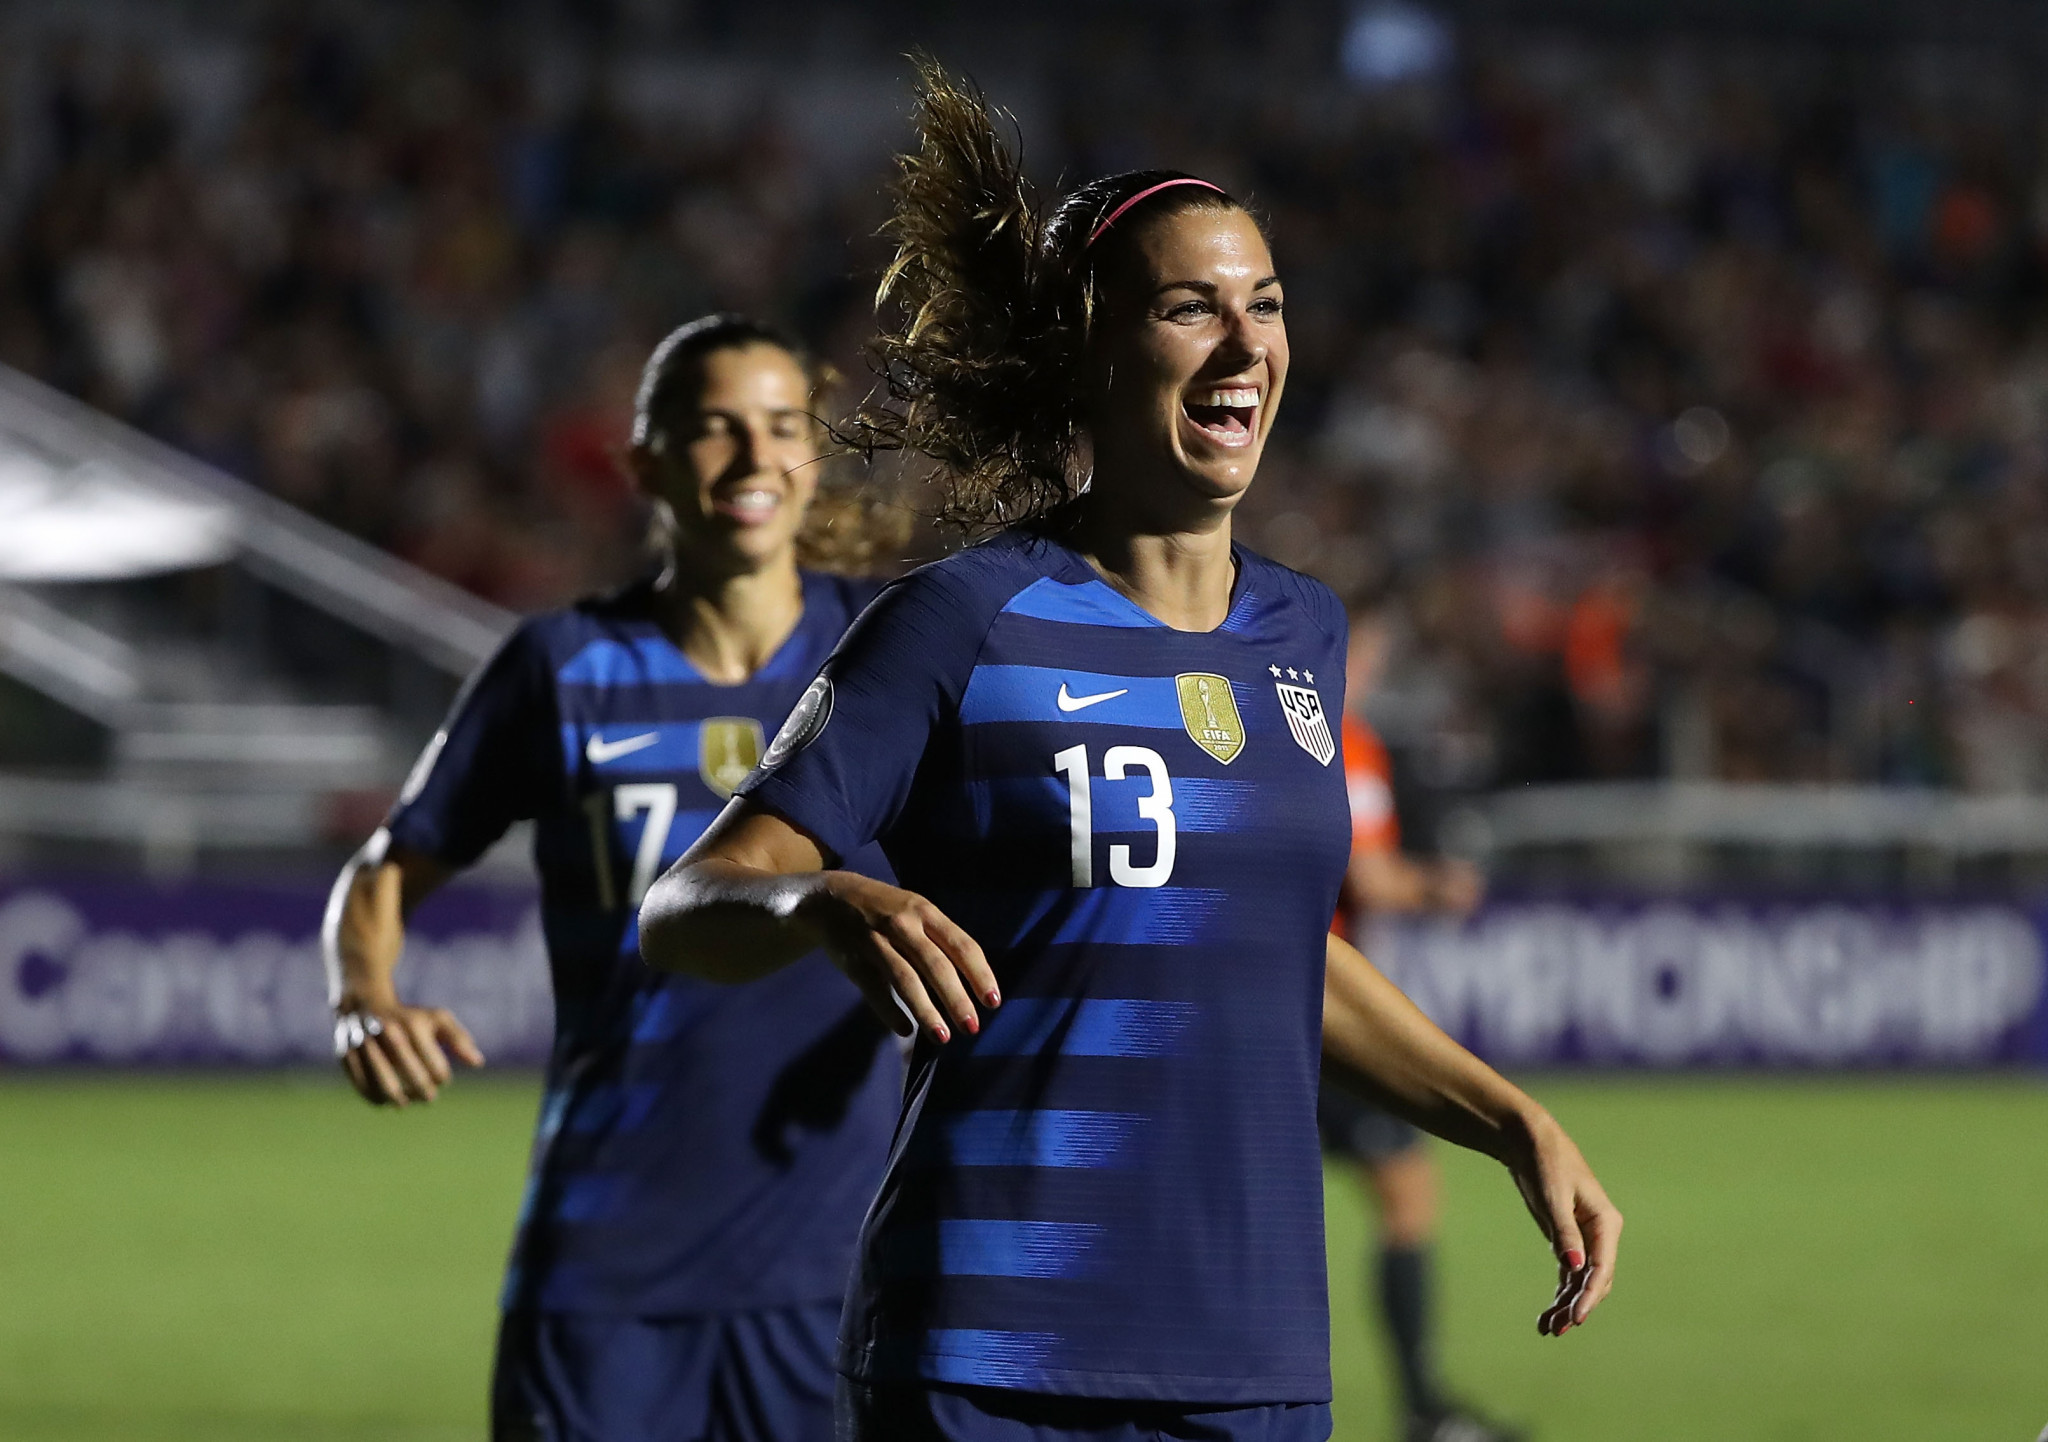 Alex Morgan of the United States celebrates scoring against Mexico, a game which her team won 6-0 ©Getty Images